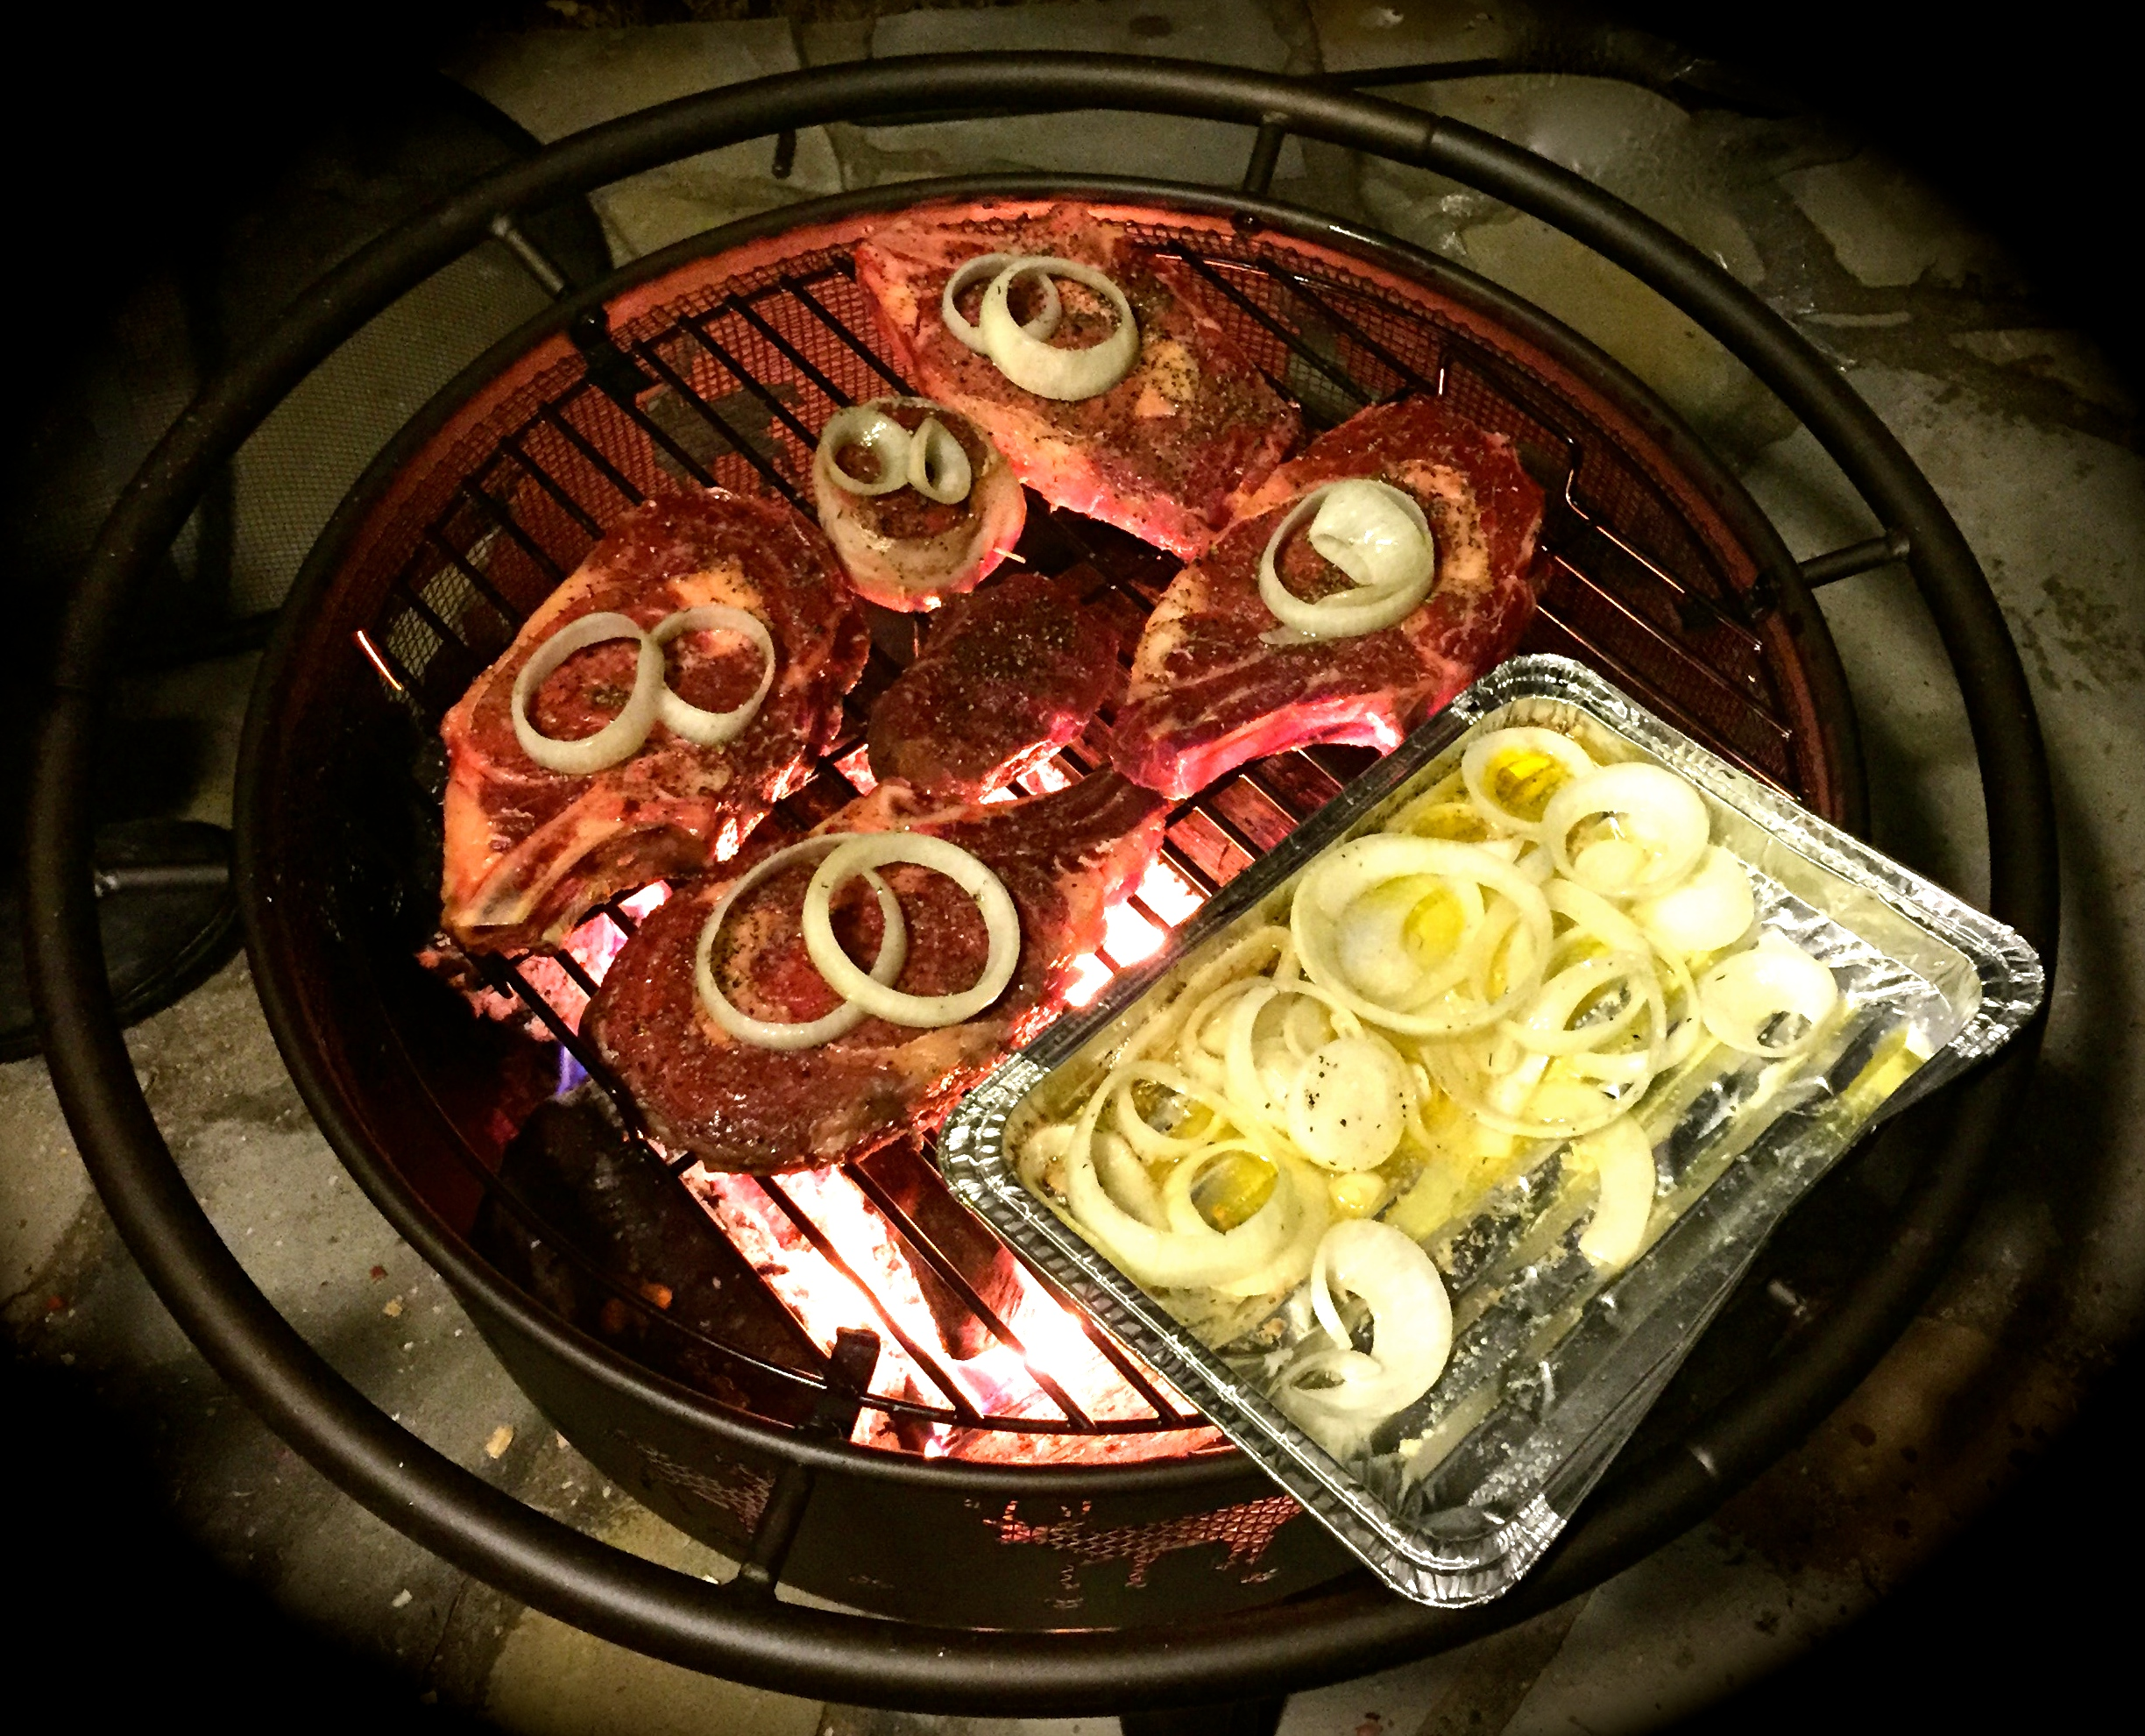 Son-of-Convivial Boar's newly acquired fire pit grill